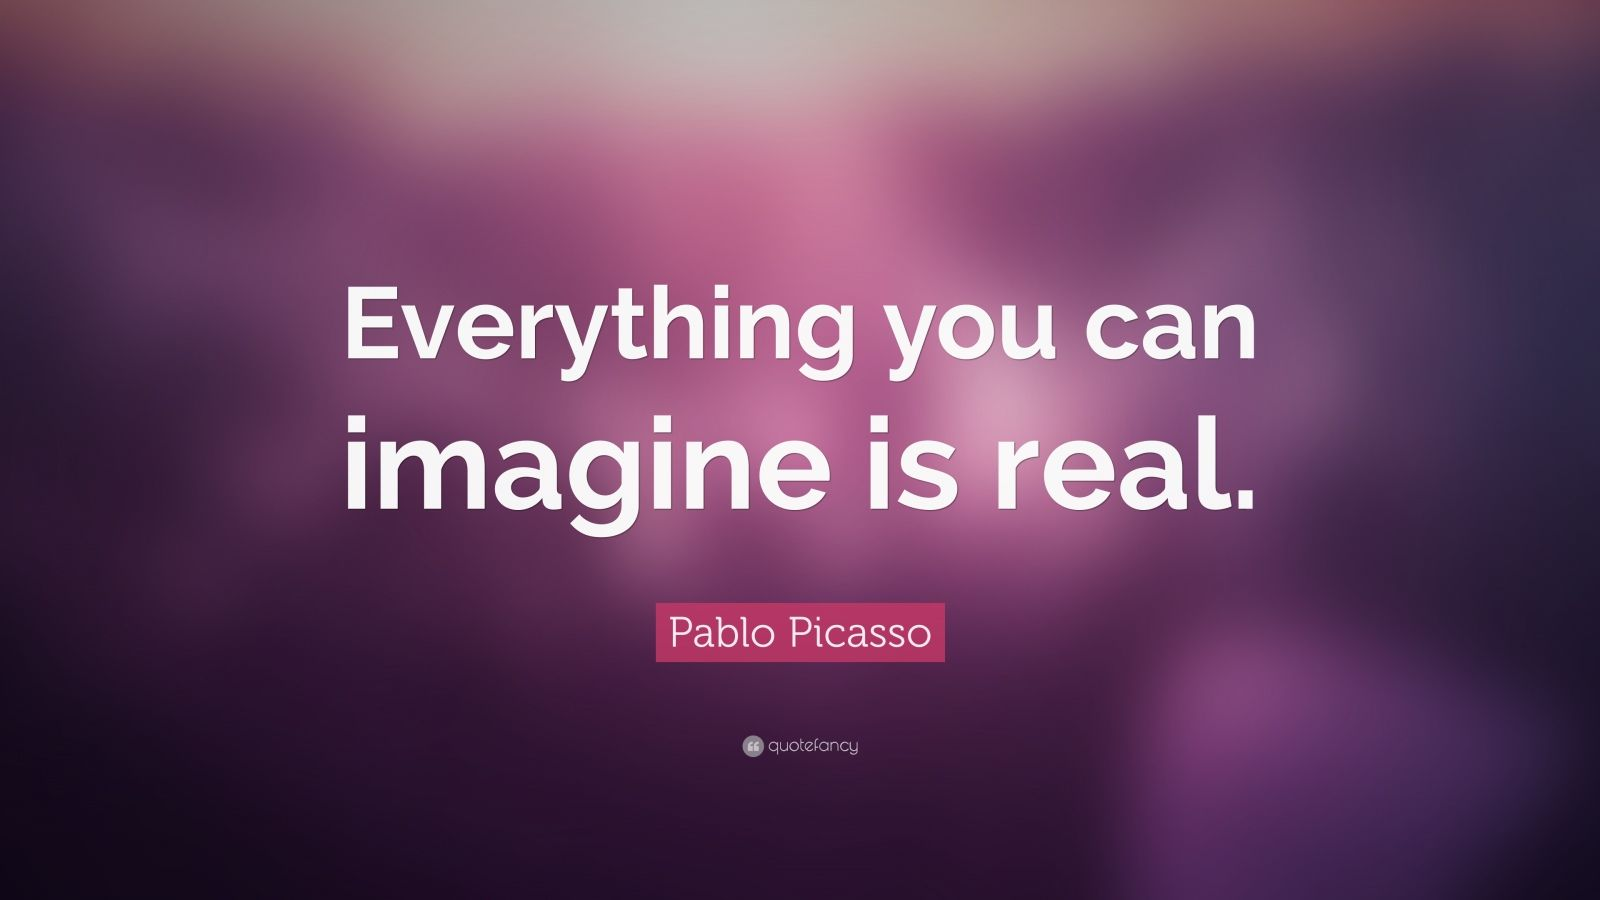 Turning 30 Quotes Wallpapers Pablo Picasso Quote Everything You Can Imagine Is Real